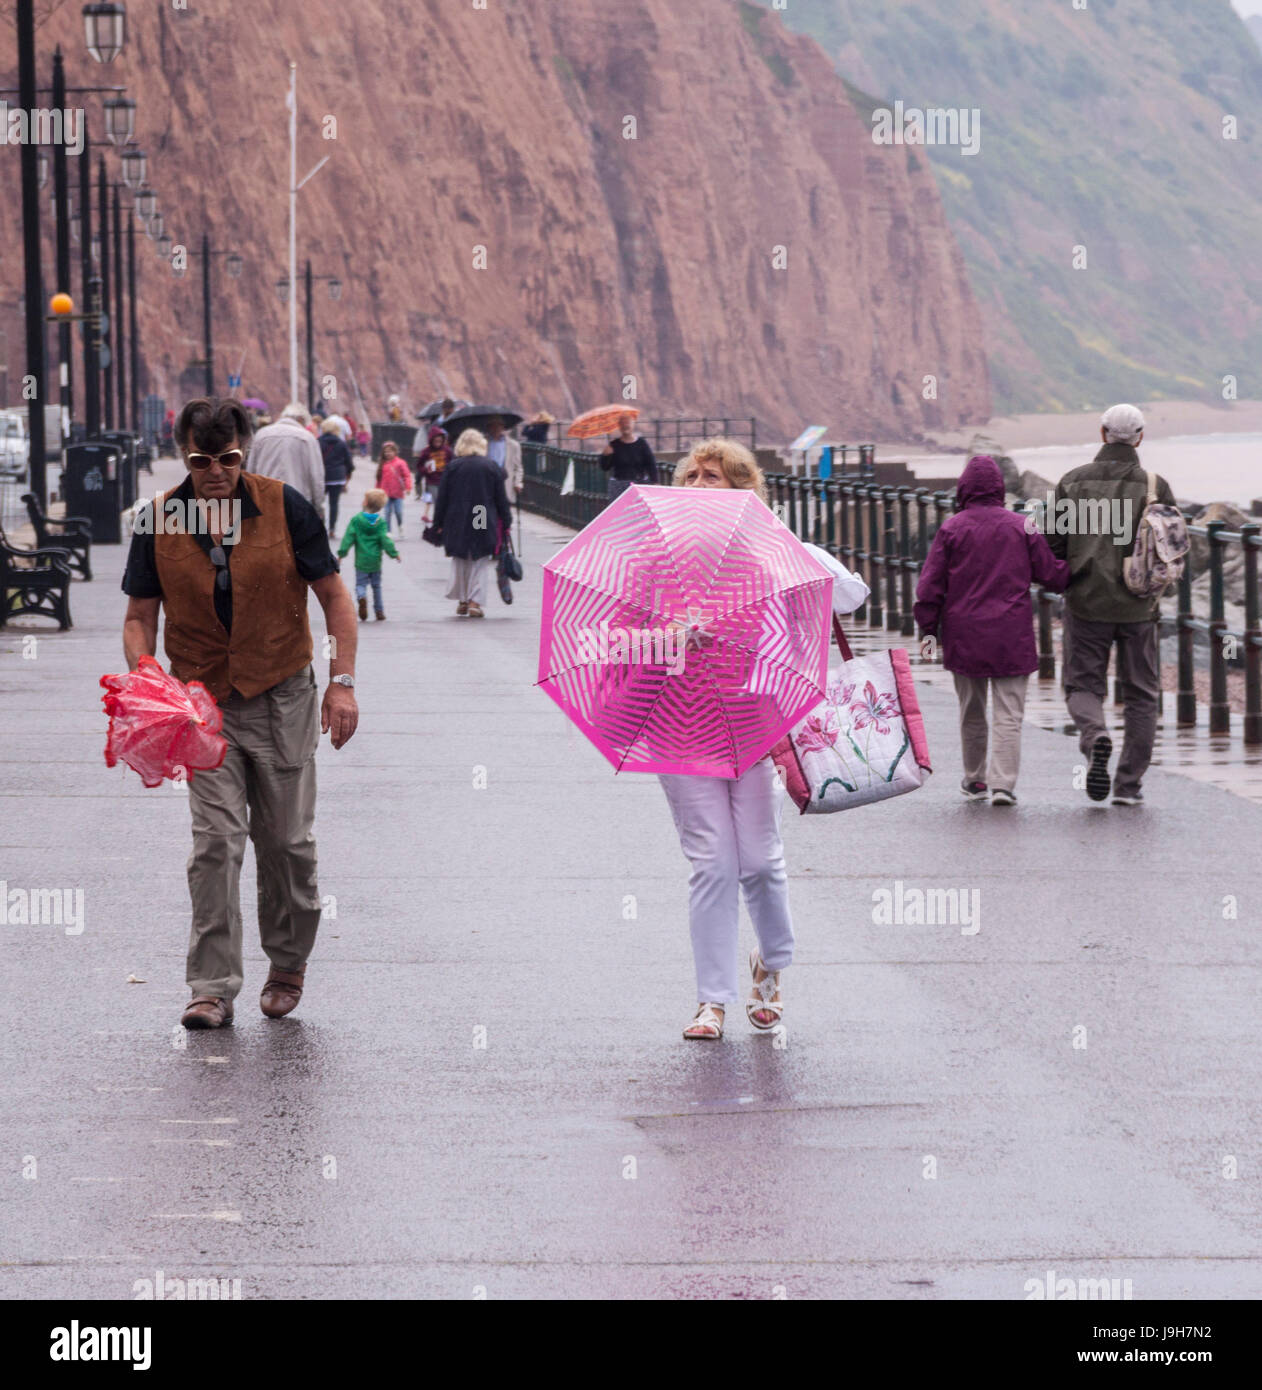 sidmouth-devon-2nd-june-17-umbrellas-to-